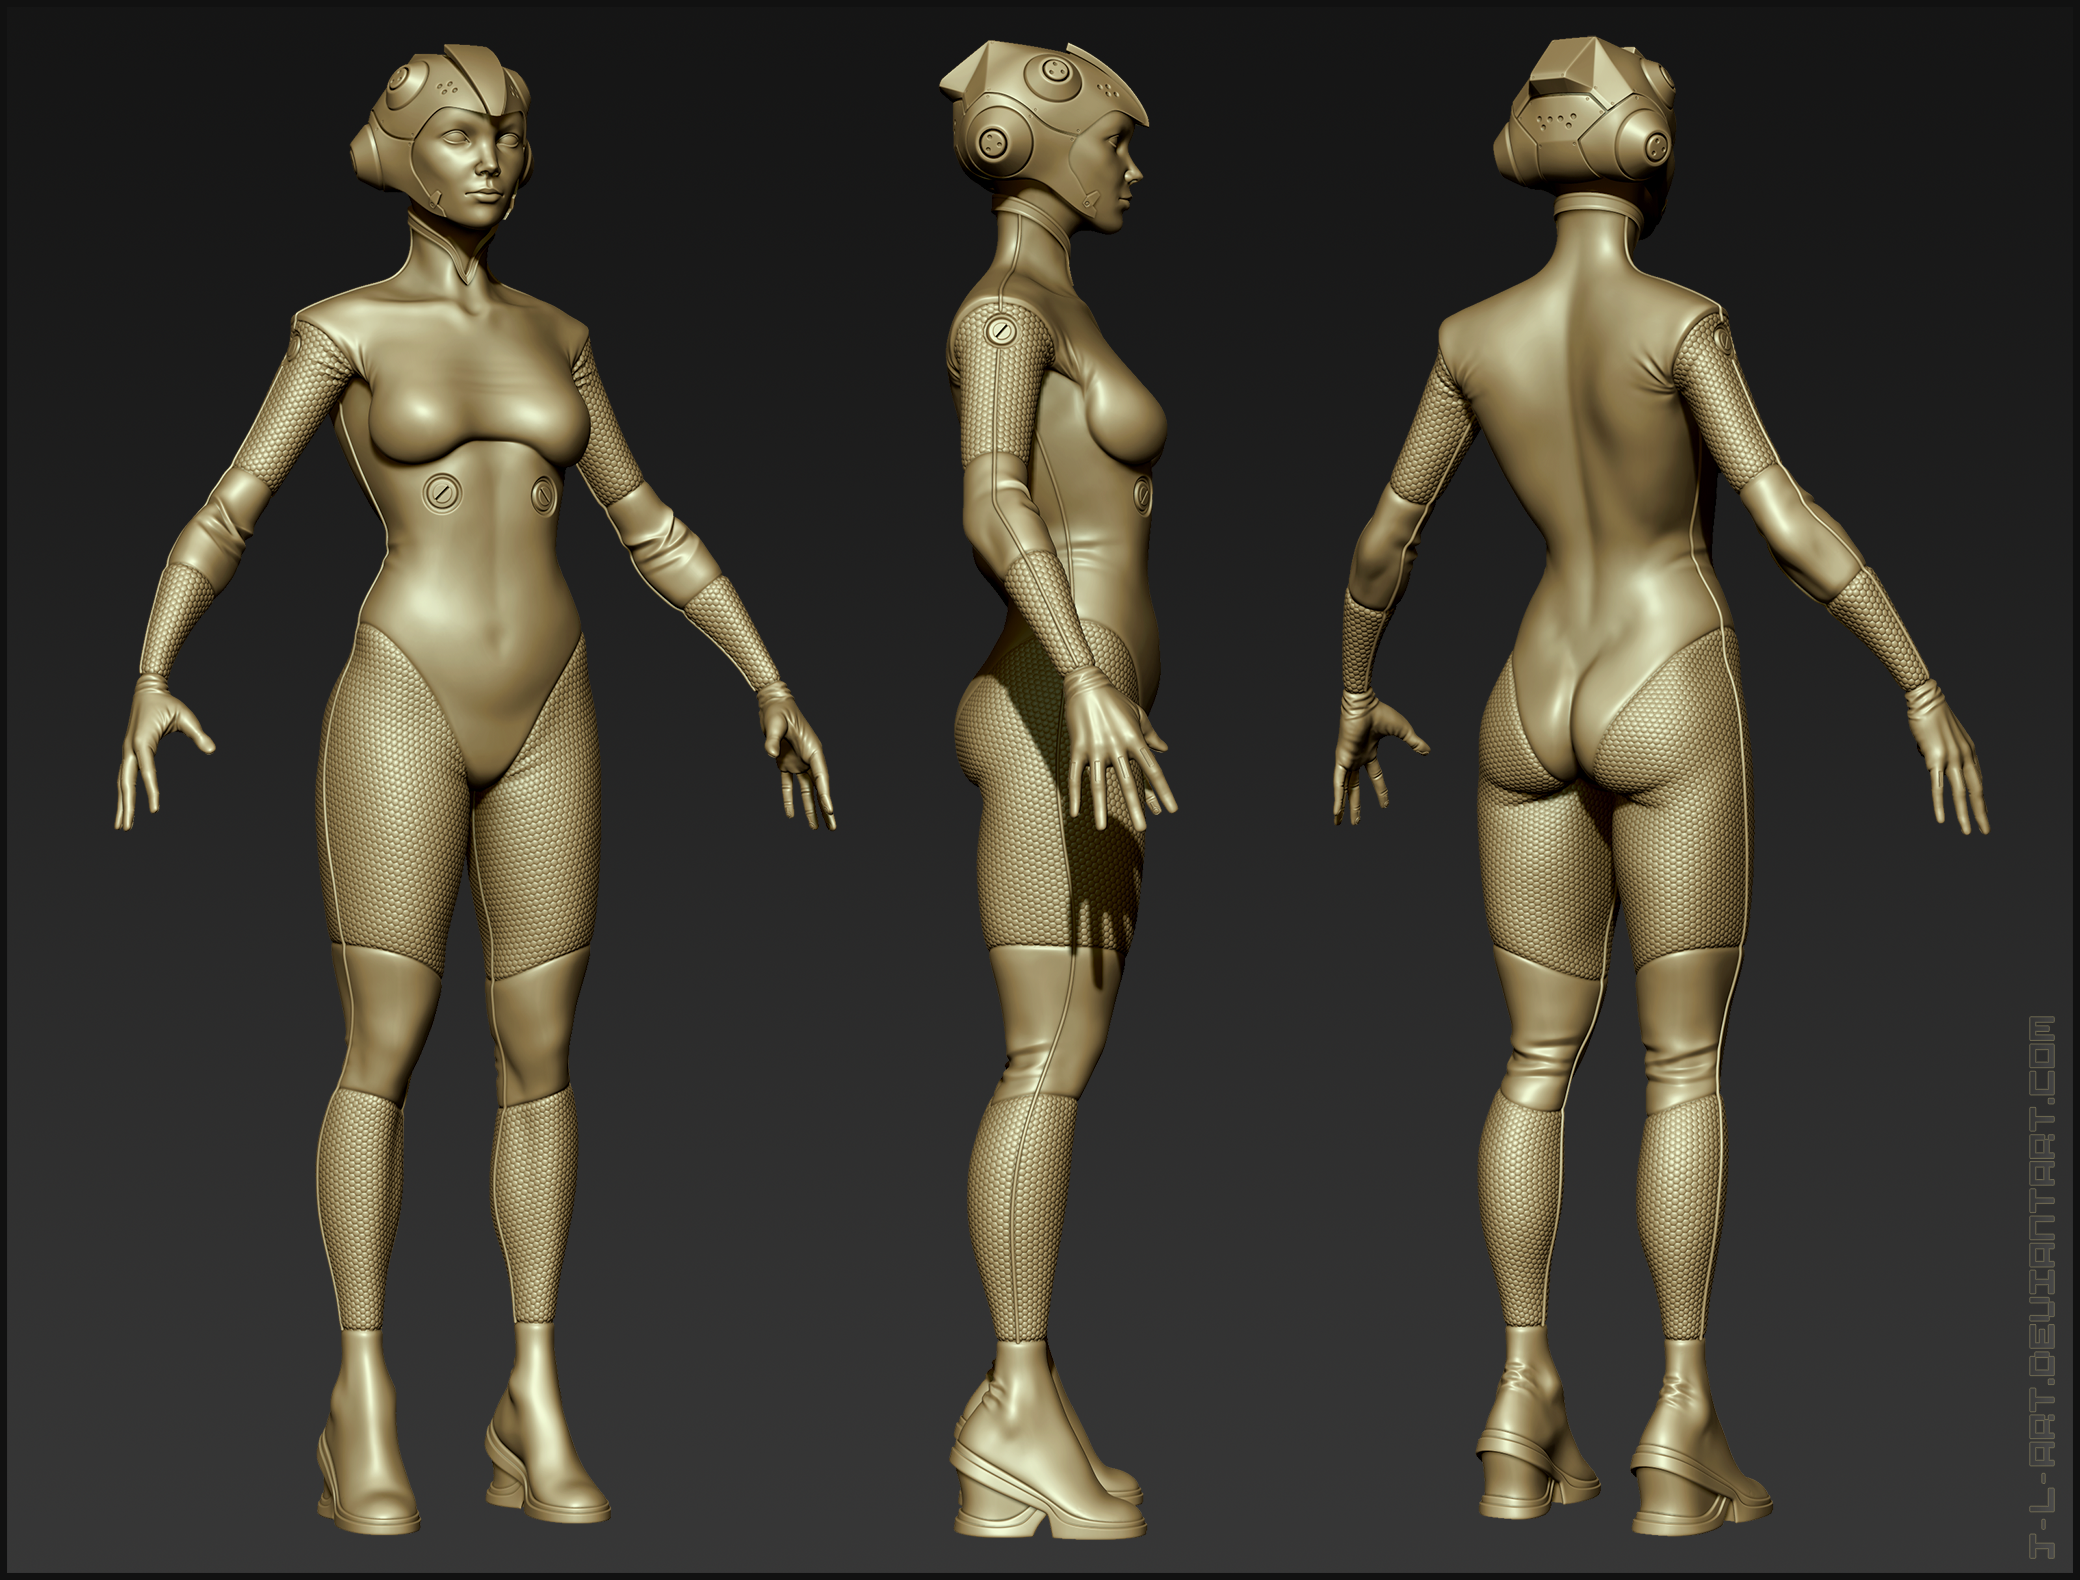 stylized_female_character___highpoly_by_j_l_art-d6xfylx.png